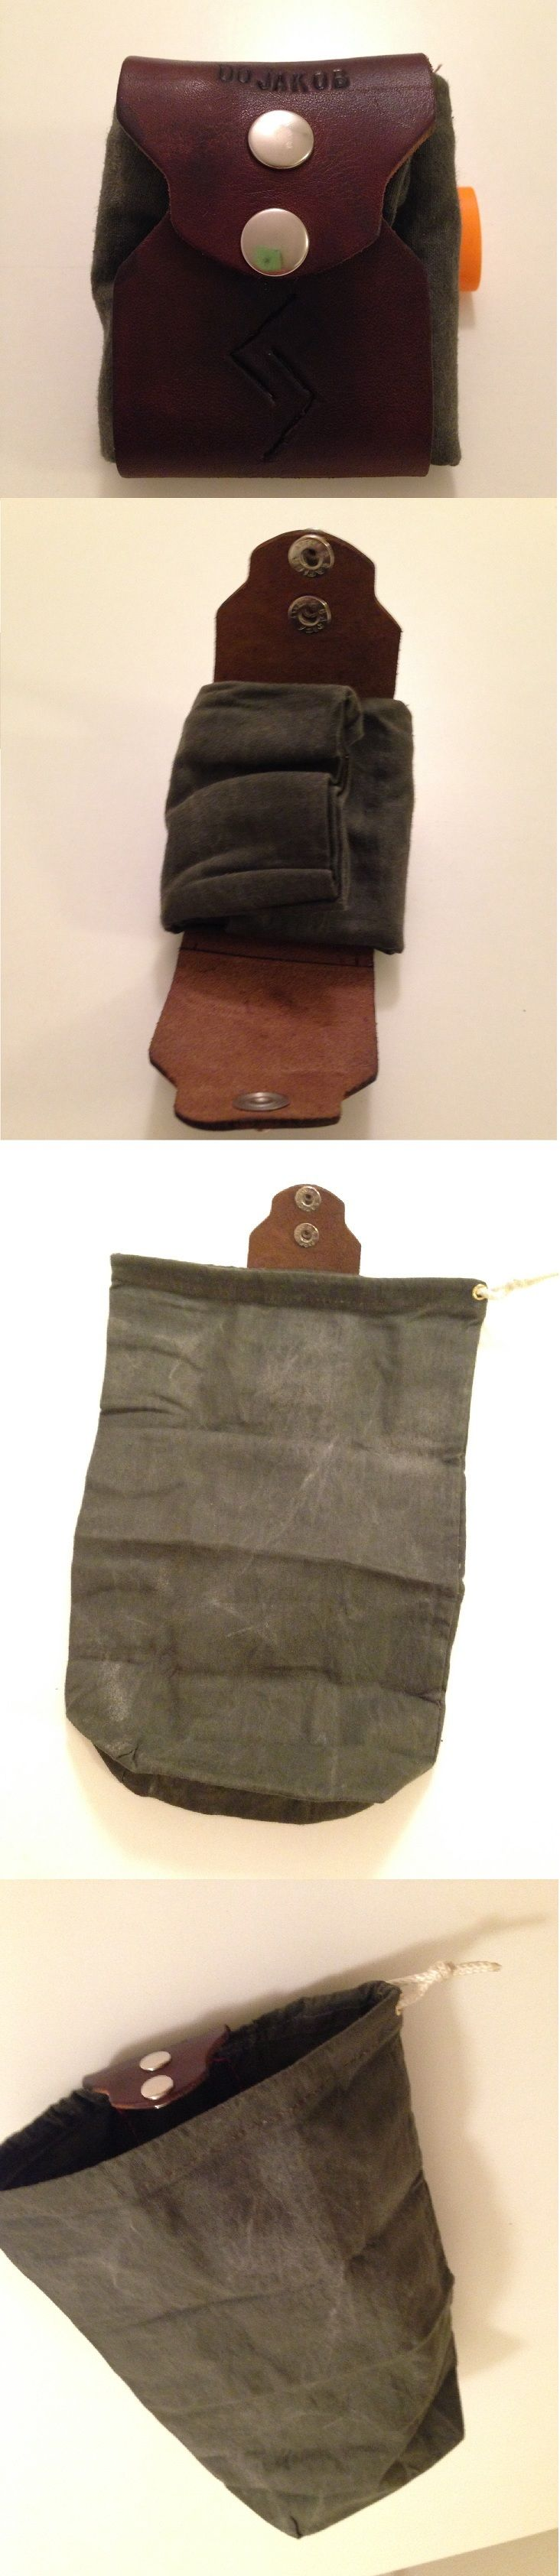 DIY - Selfmade Dump Pouch / Rollypoly - Leather and waxed canvas